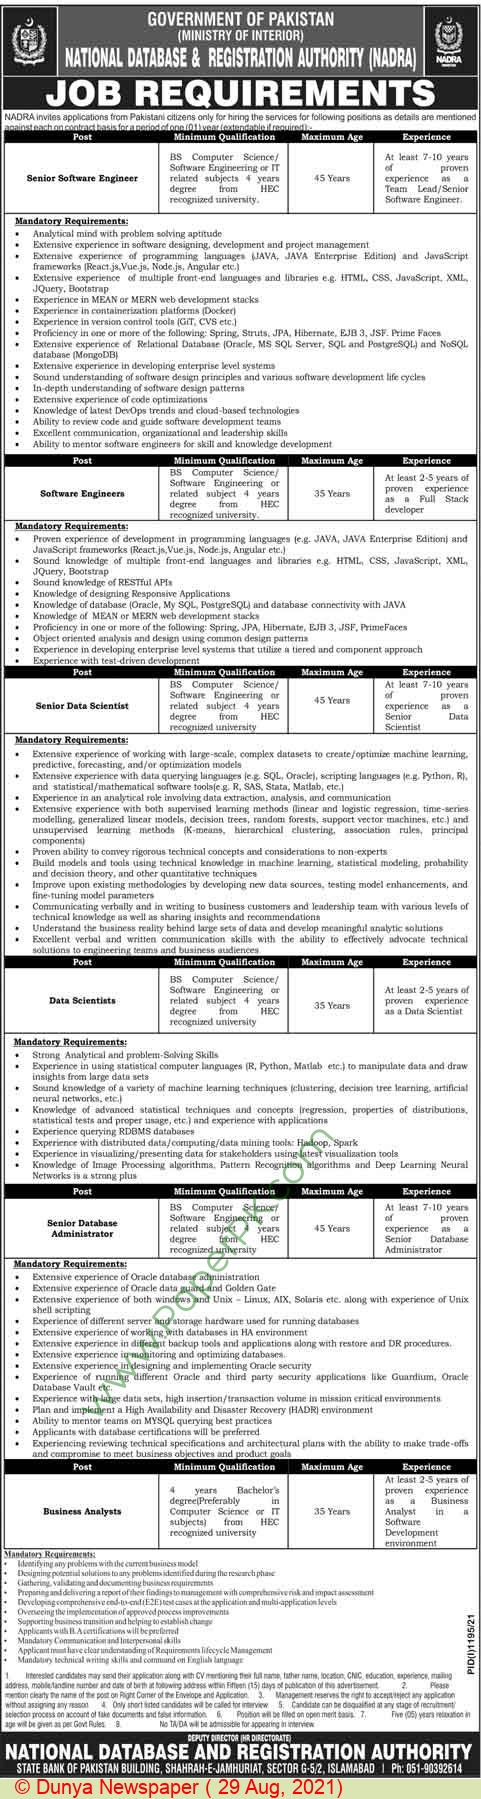 National Database And Registration Authority jobs newspaper ad for Business Analyst in Islamabad on 2021-08-29